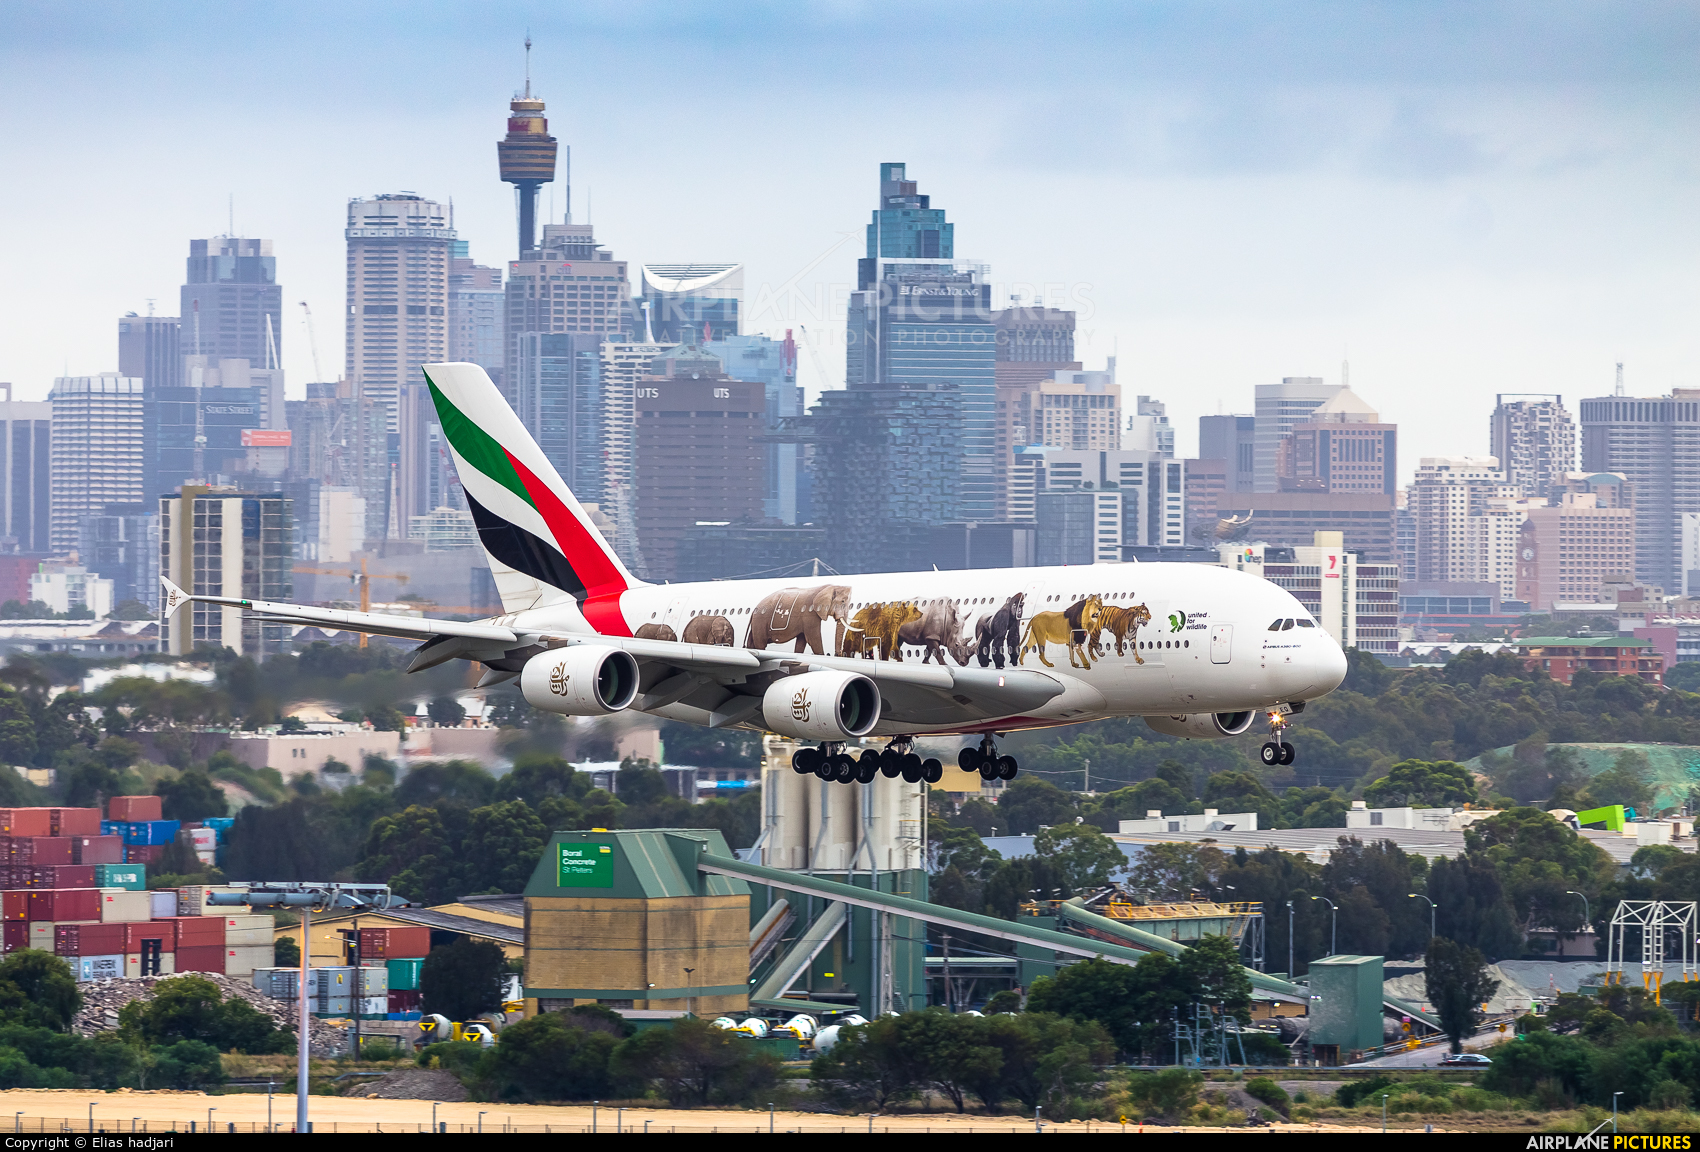 Emirates Airlines A6-EEQ aircraft at Sydney - Kingsford Smith Intl, NSW